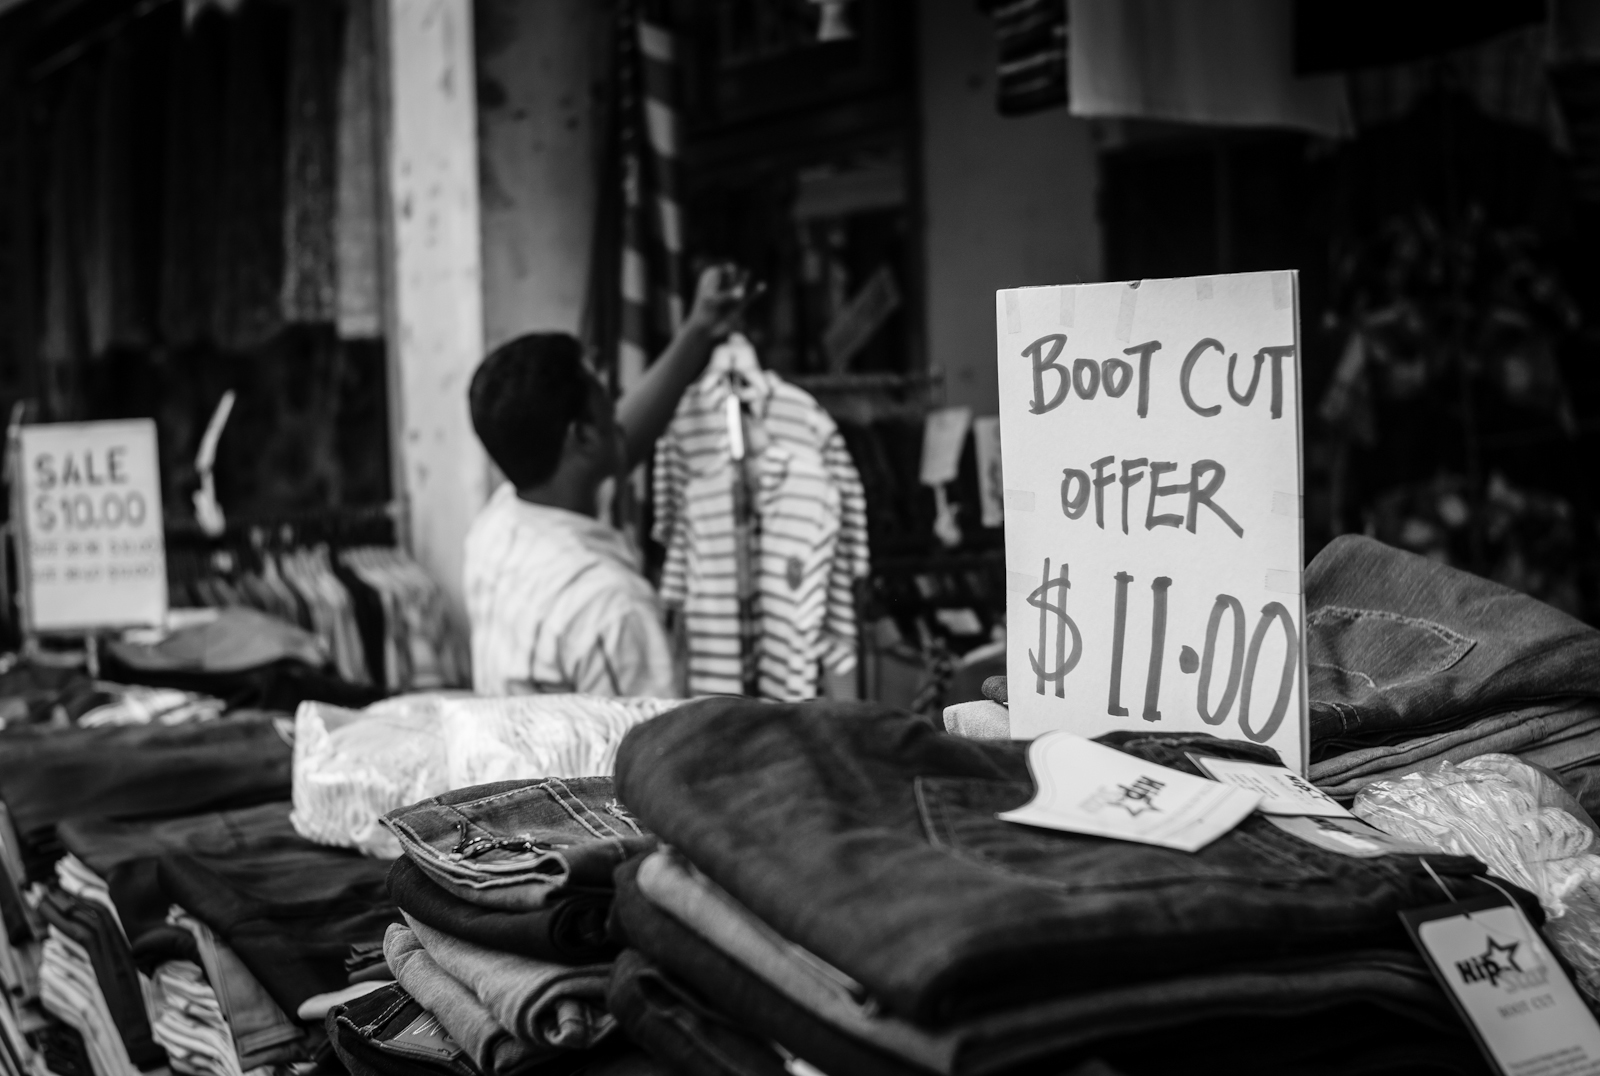 Street photography - Boot cut jeans on sale in Little India